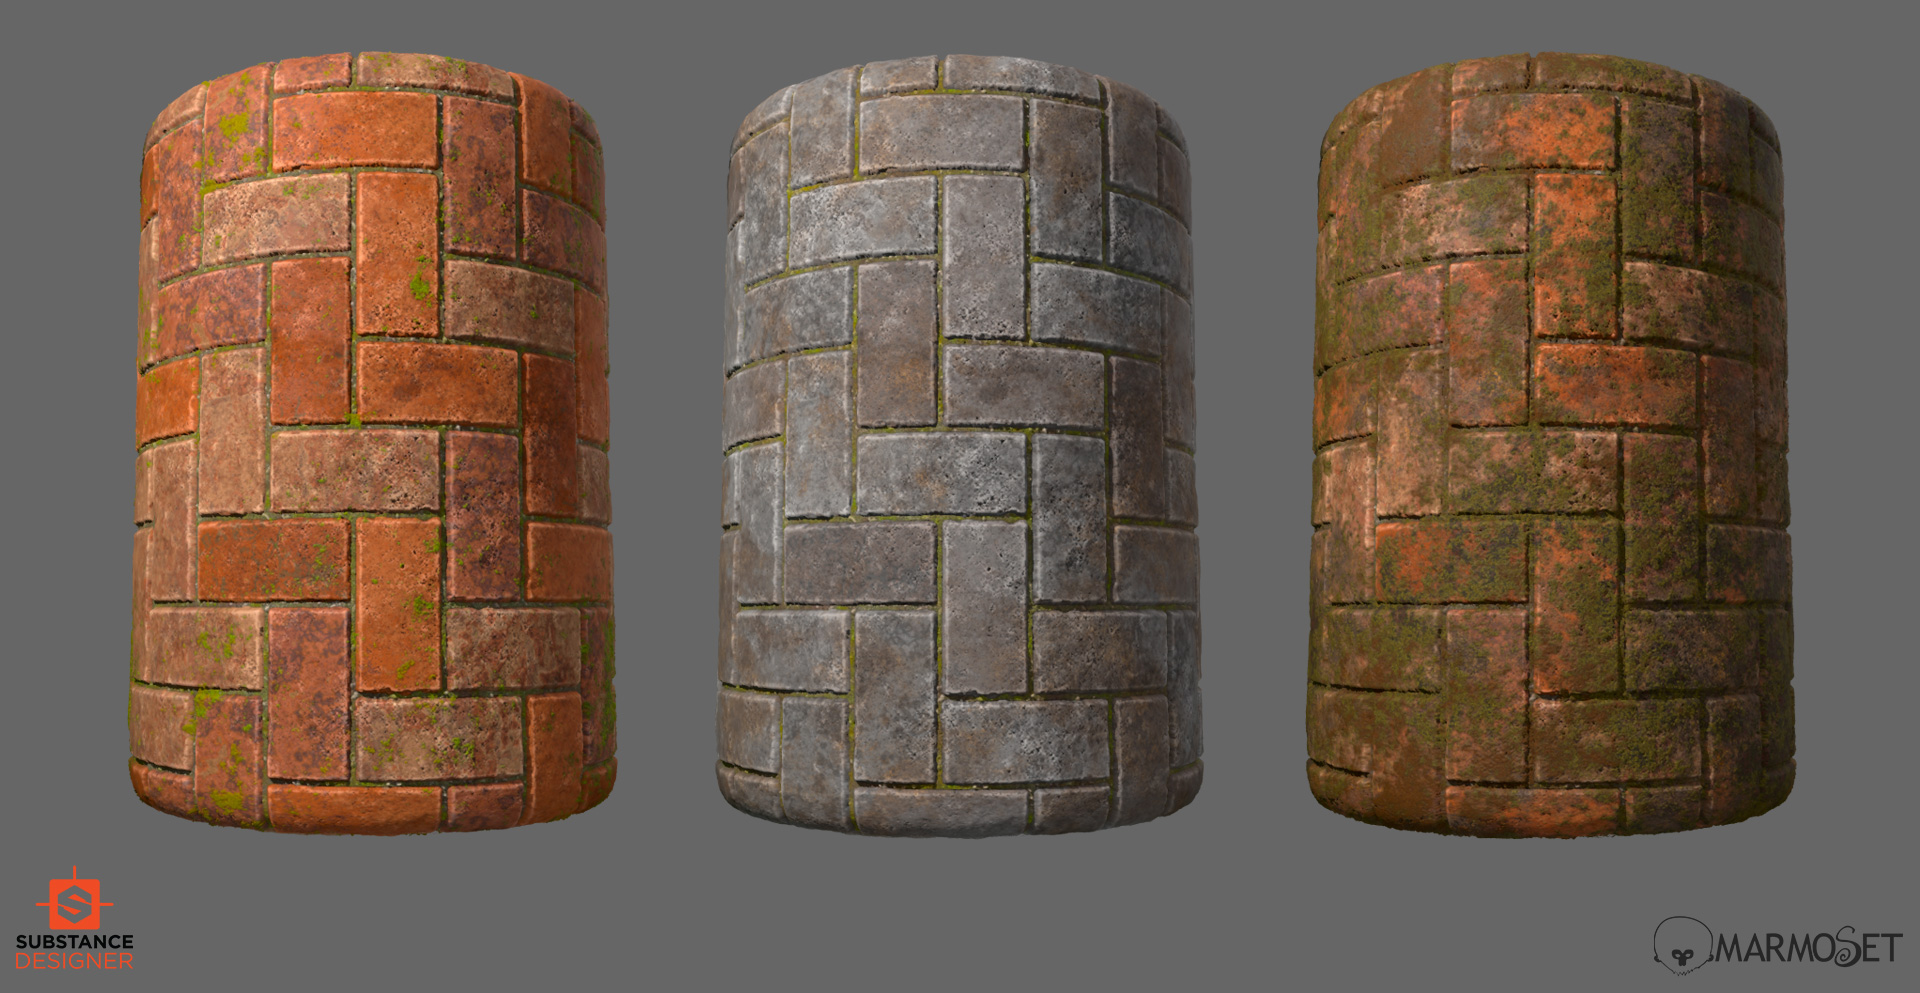 Substance designer herringbone tiles